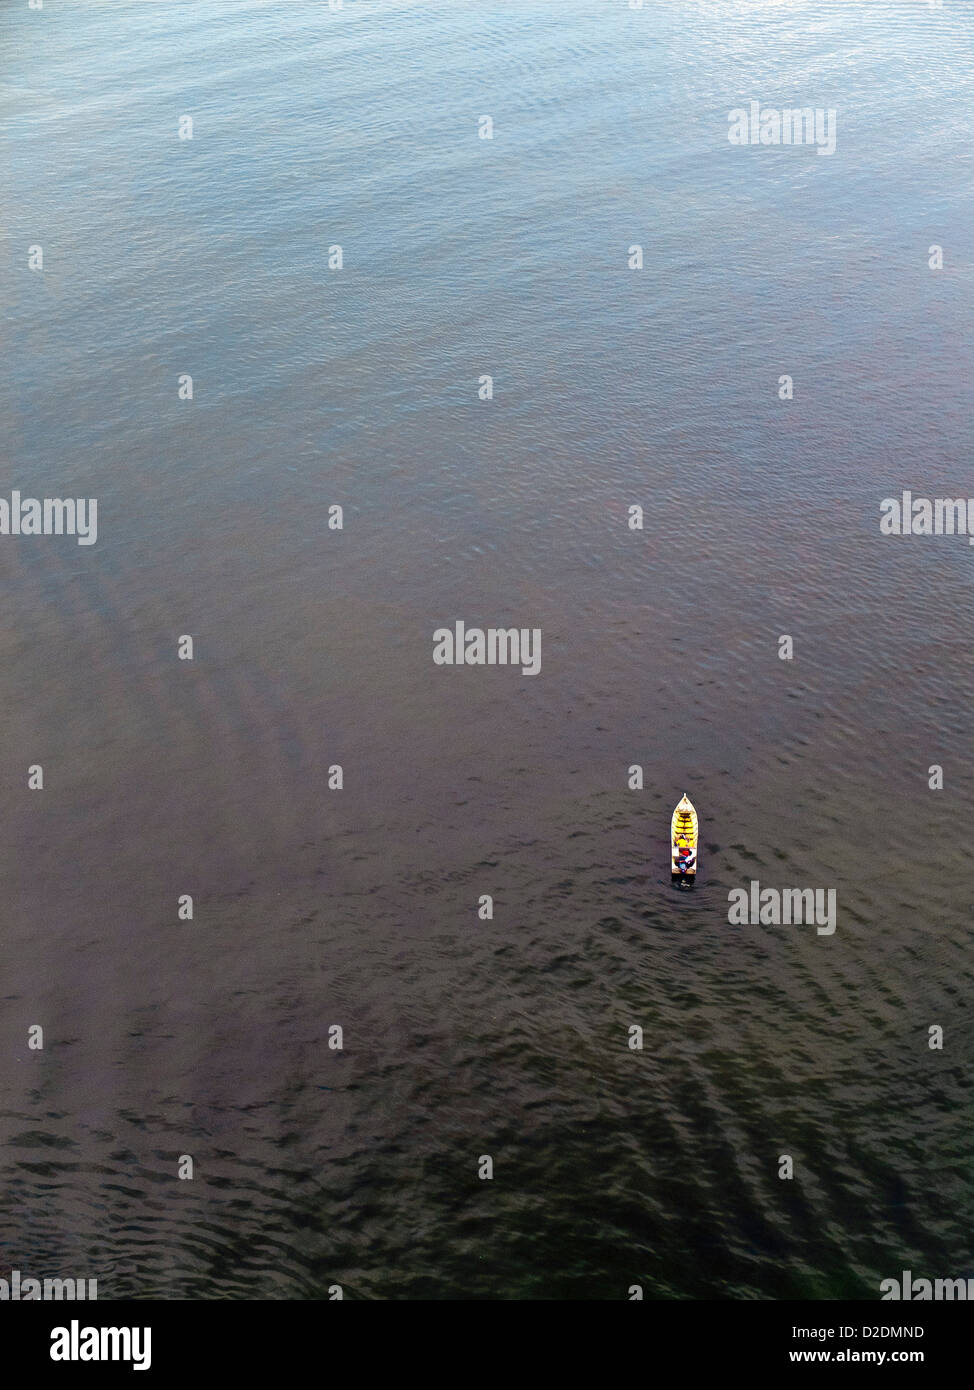 Malaysia, Borneo, Sandakan, South China Sea, Aerial view of a boat - Stock Image